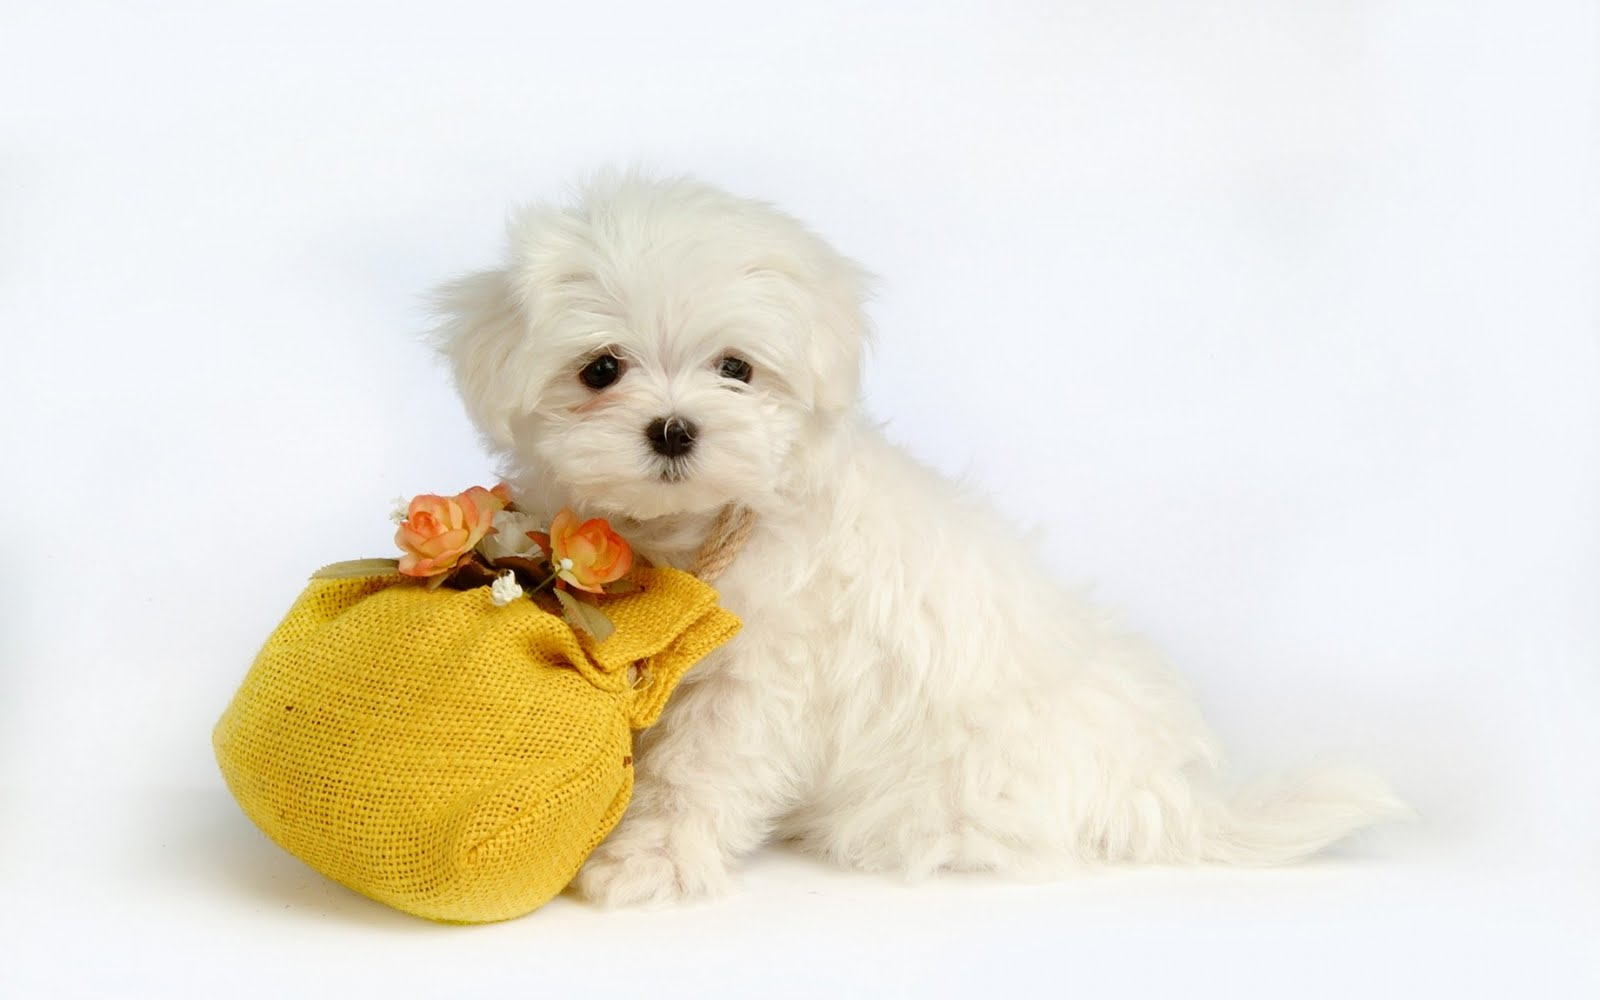 Cute Puppy Wallpaper   Wide1680x1050 Hd Wallpaper 1600x1000